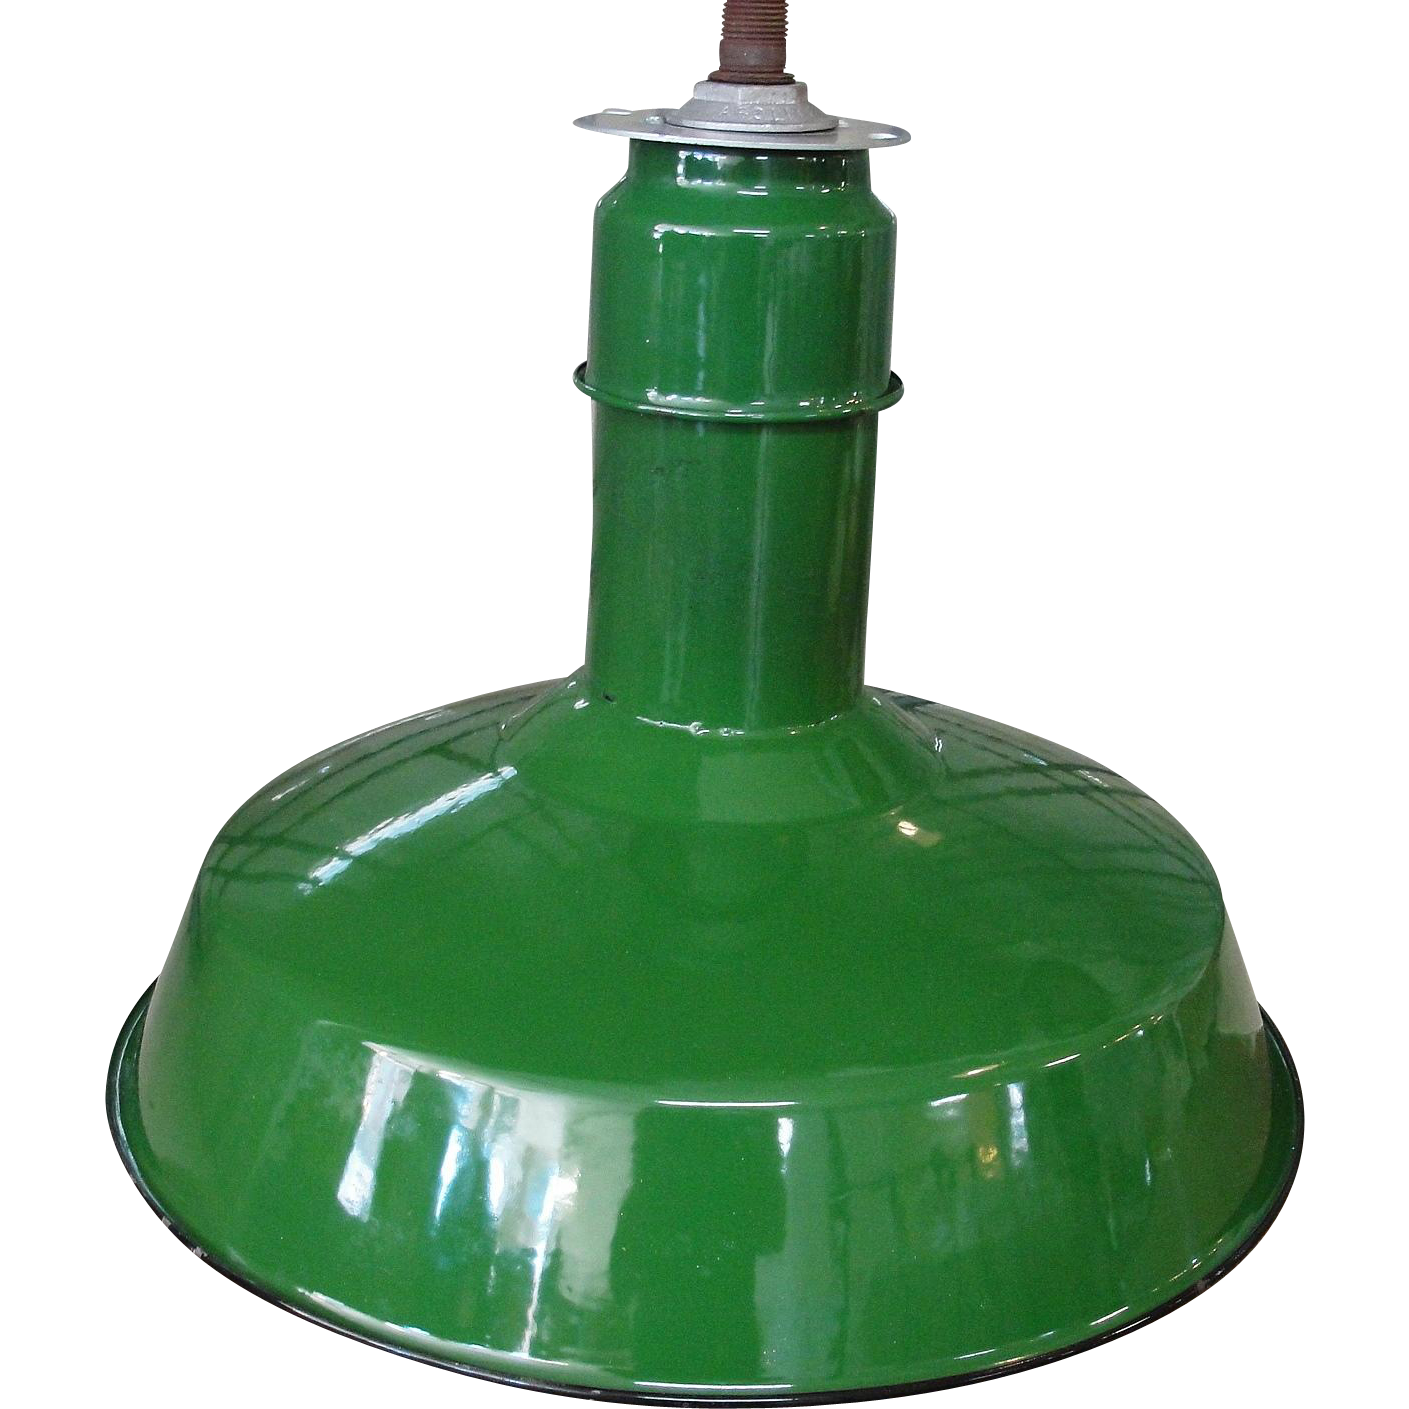 Vintage Abolite Green Porcelain Industrial Light Fixture